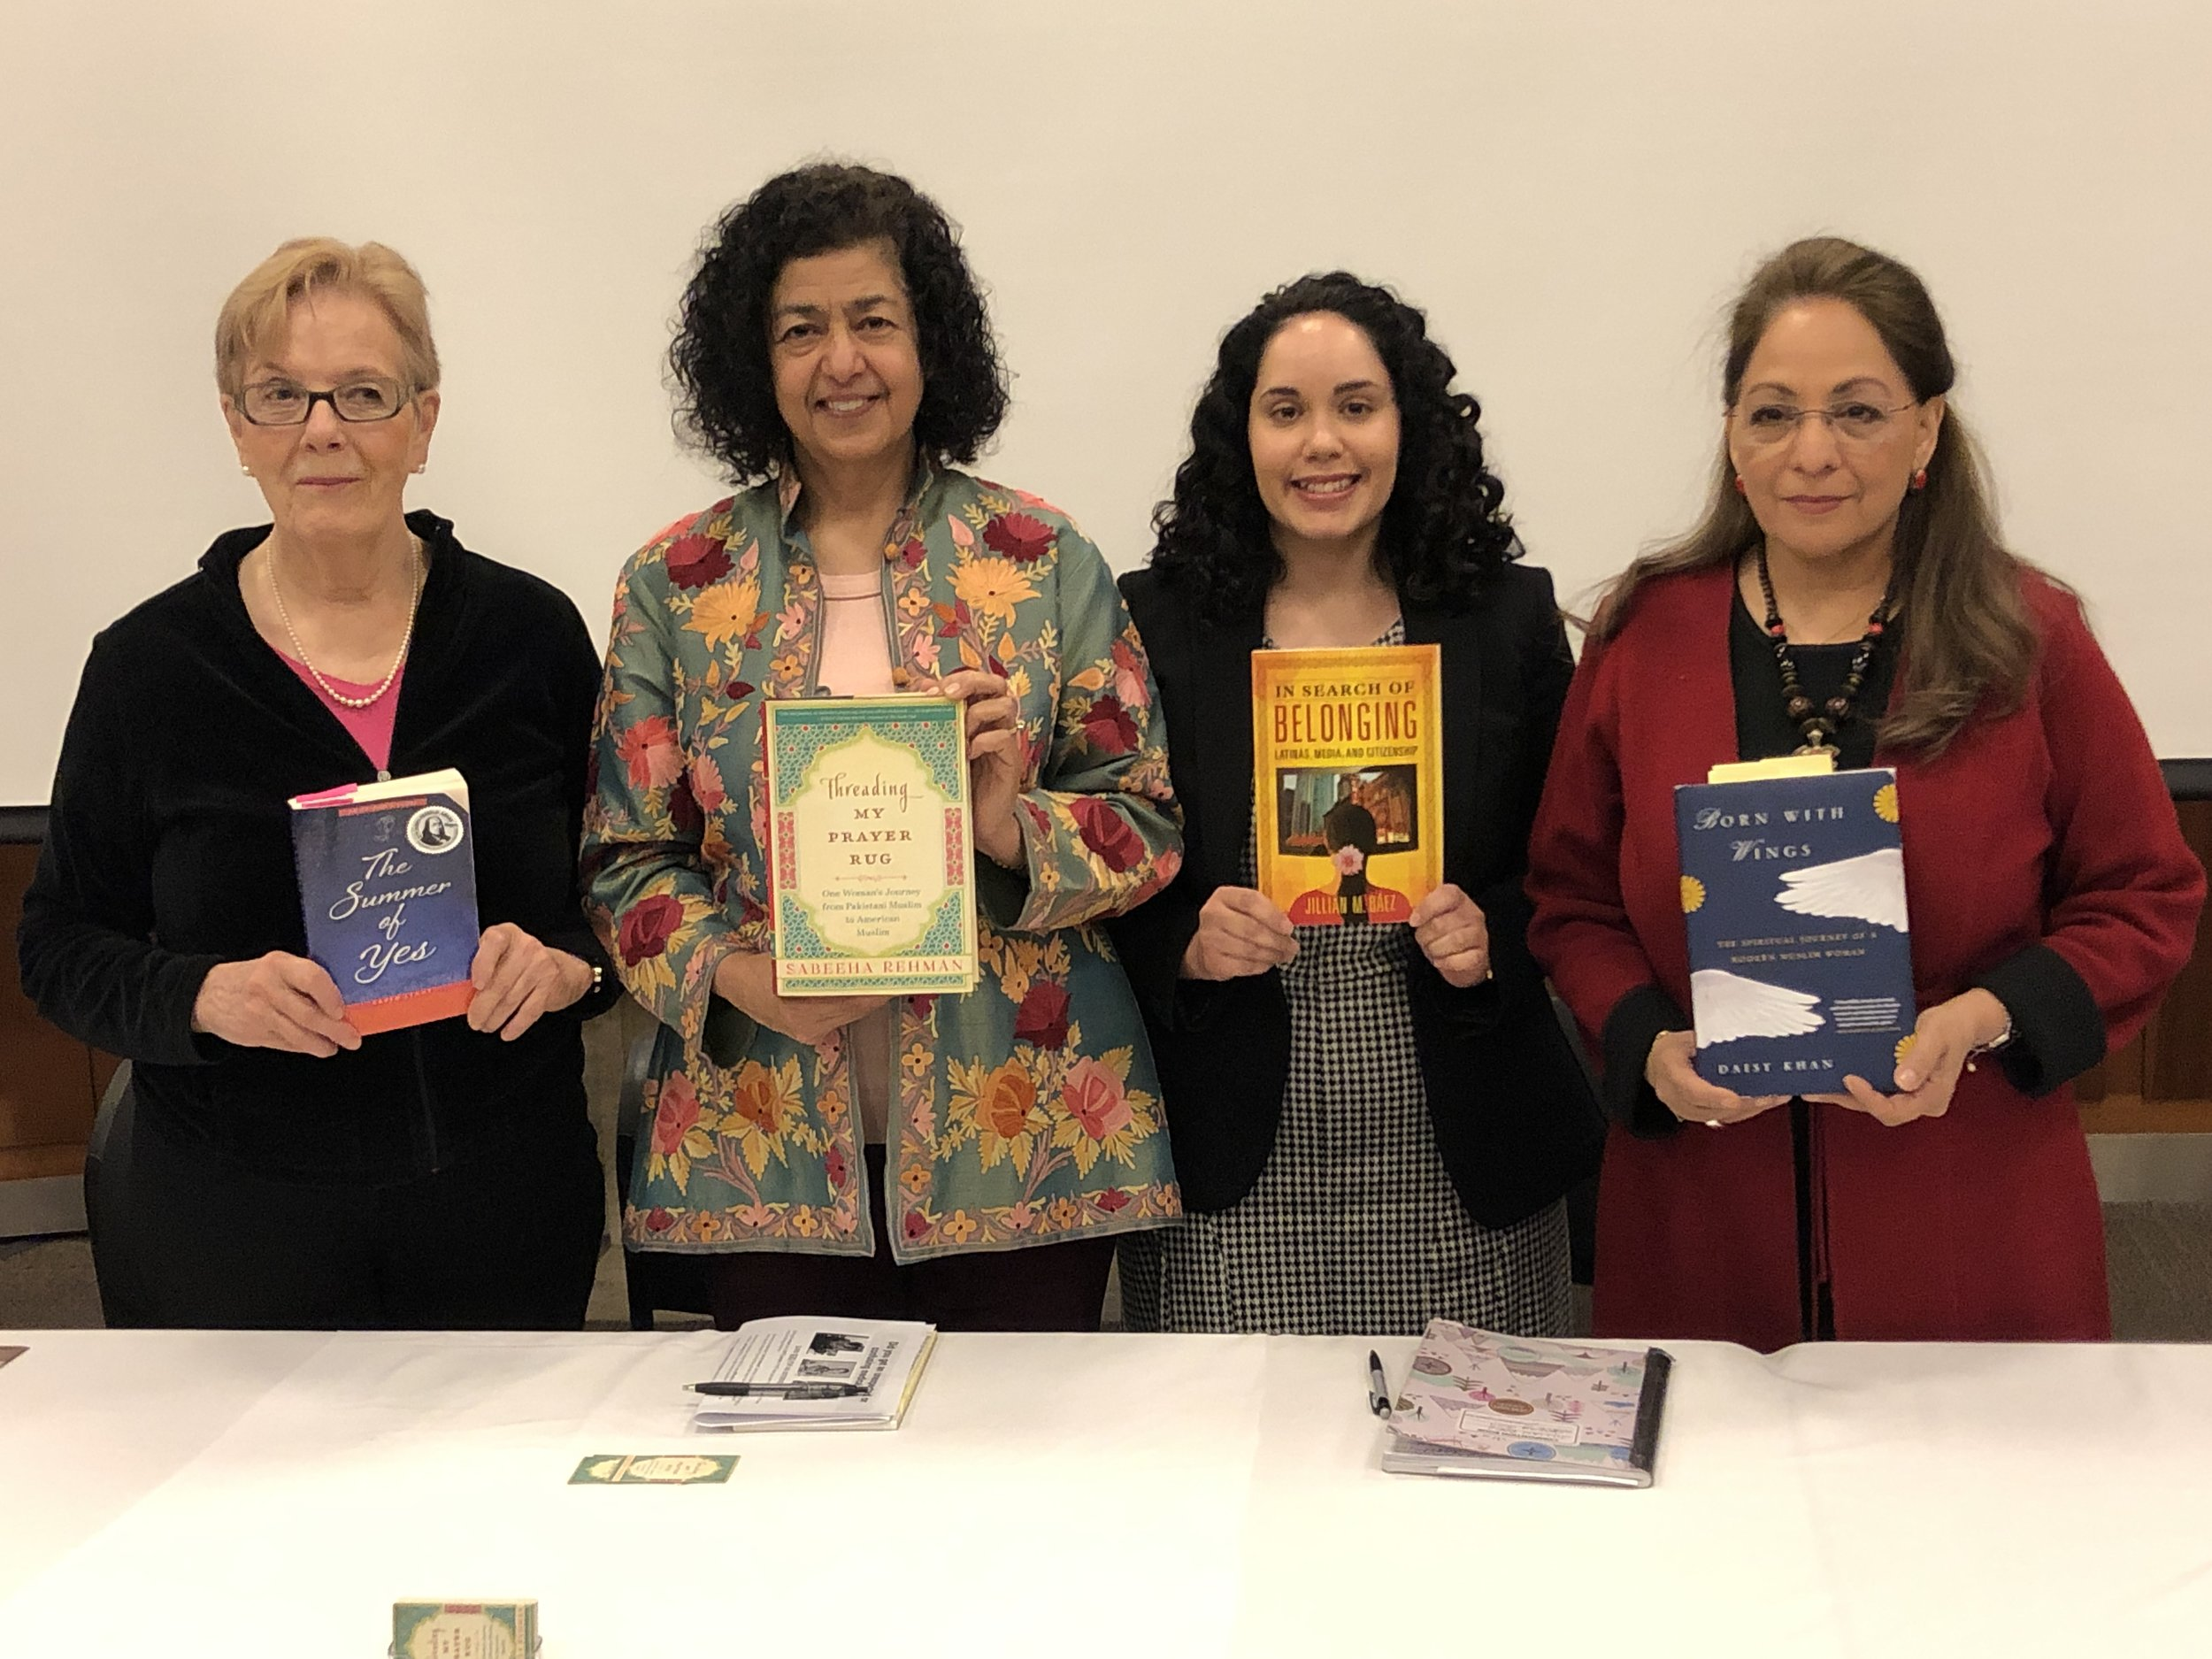 With Karen Leahy, Jillian Baez, and Daisy Khan